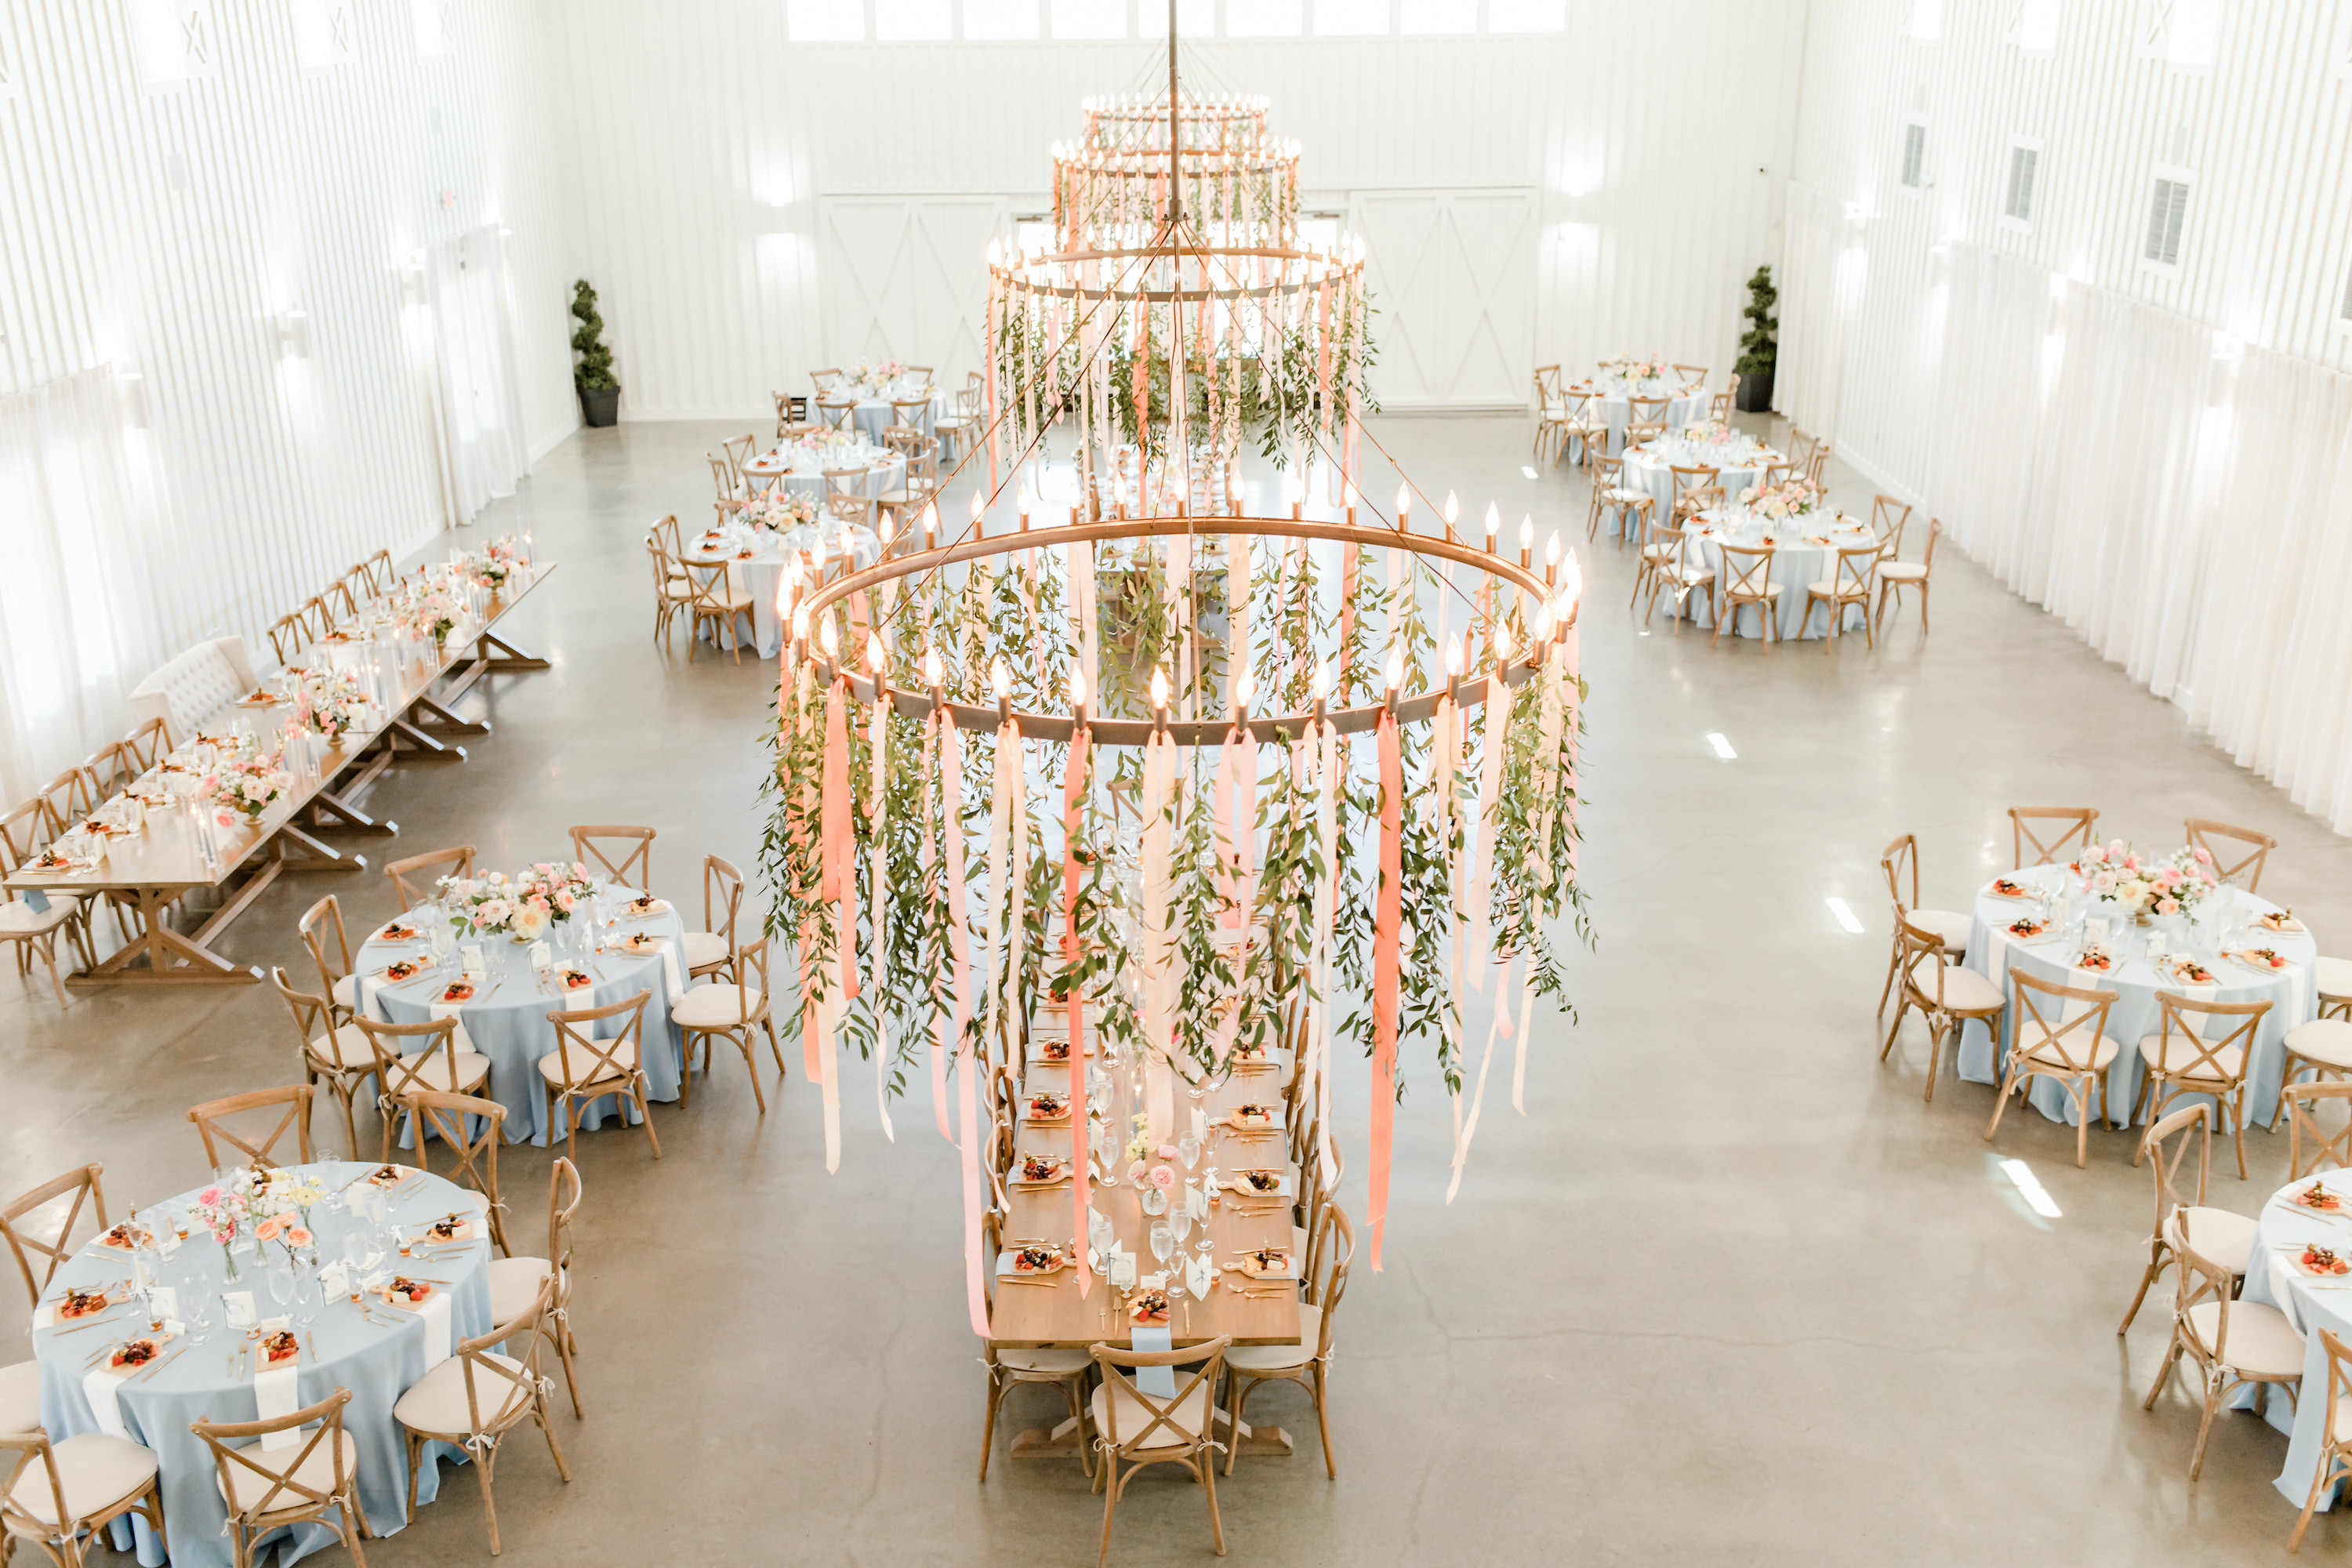 The chandeliers in the reception room have colorful streamers hanging from them with sunshine pouring into the room.